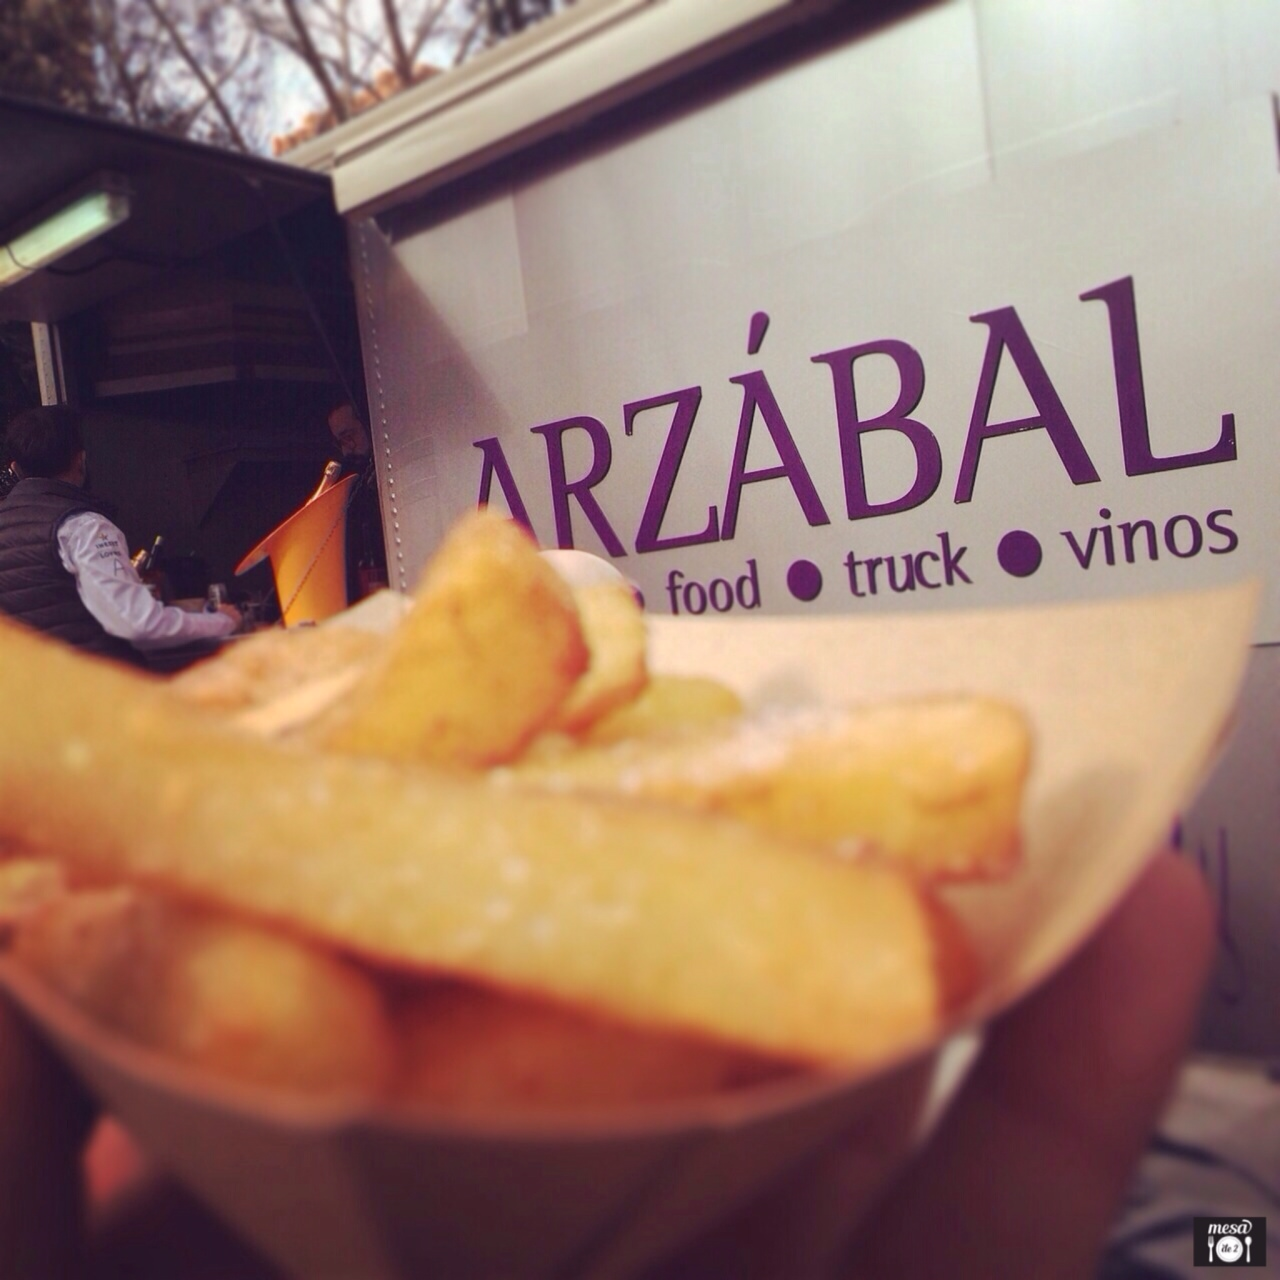 FoodTruck de ARZABAL